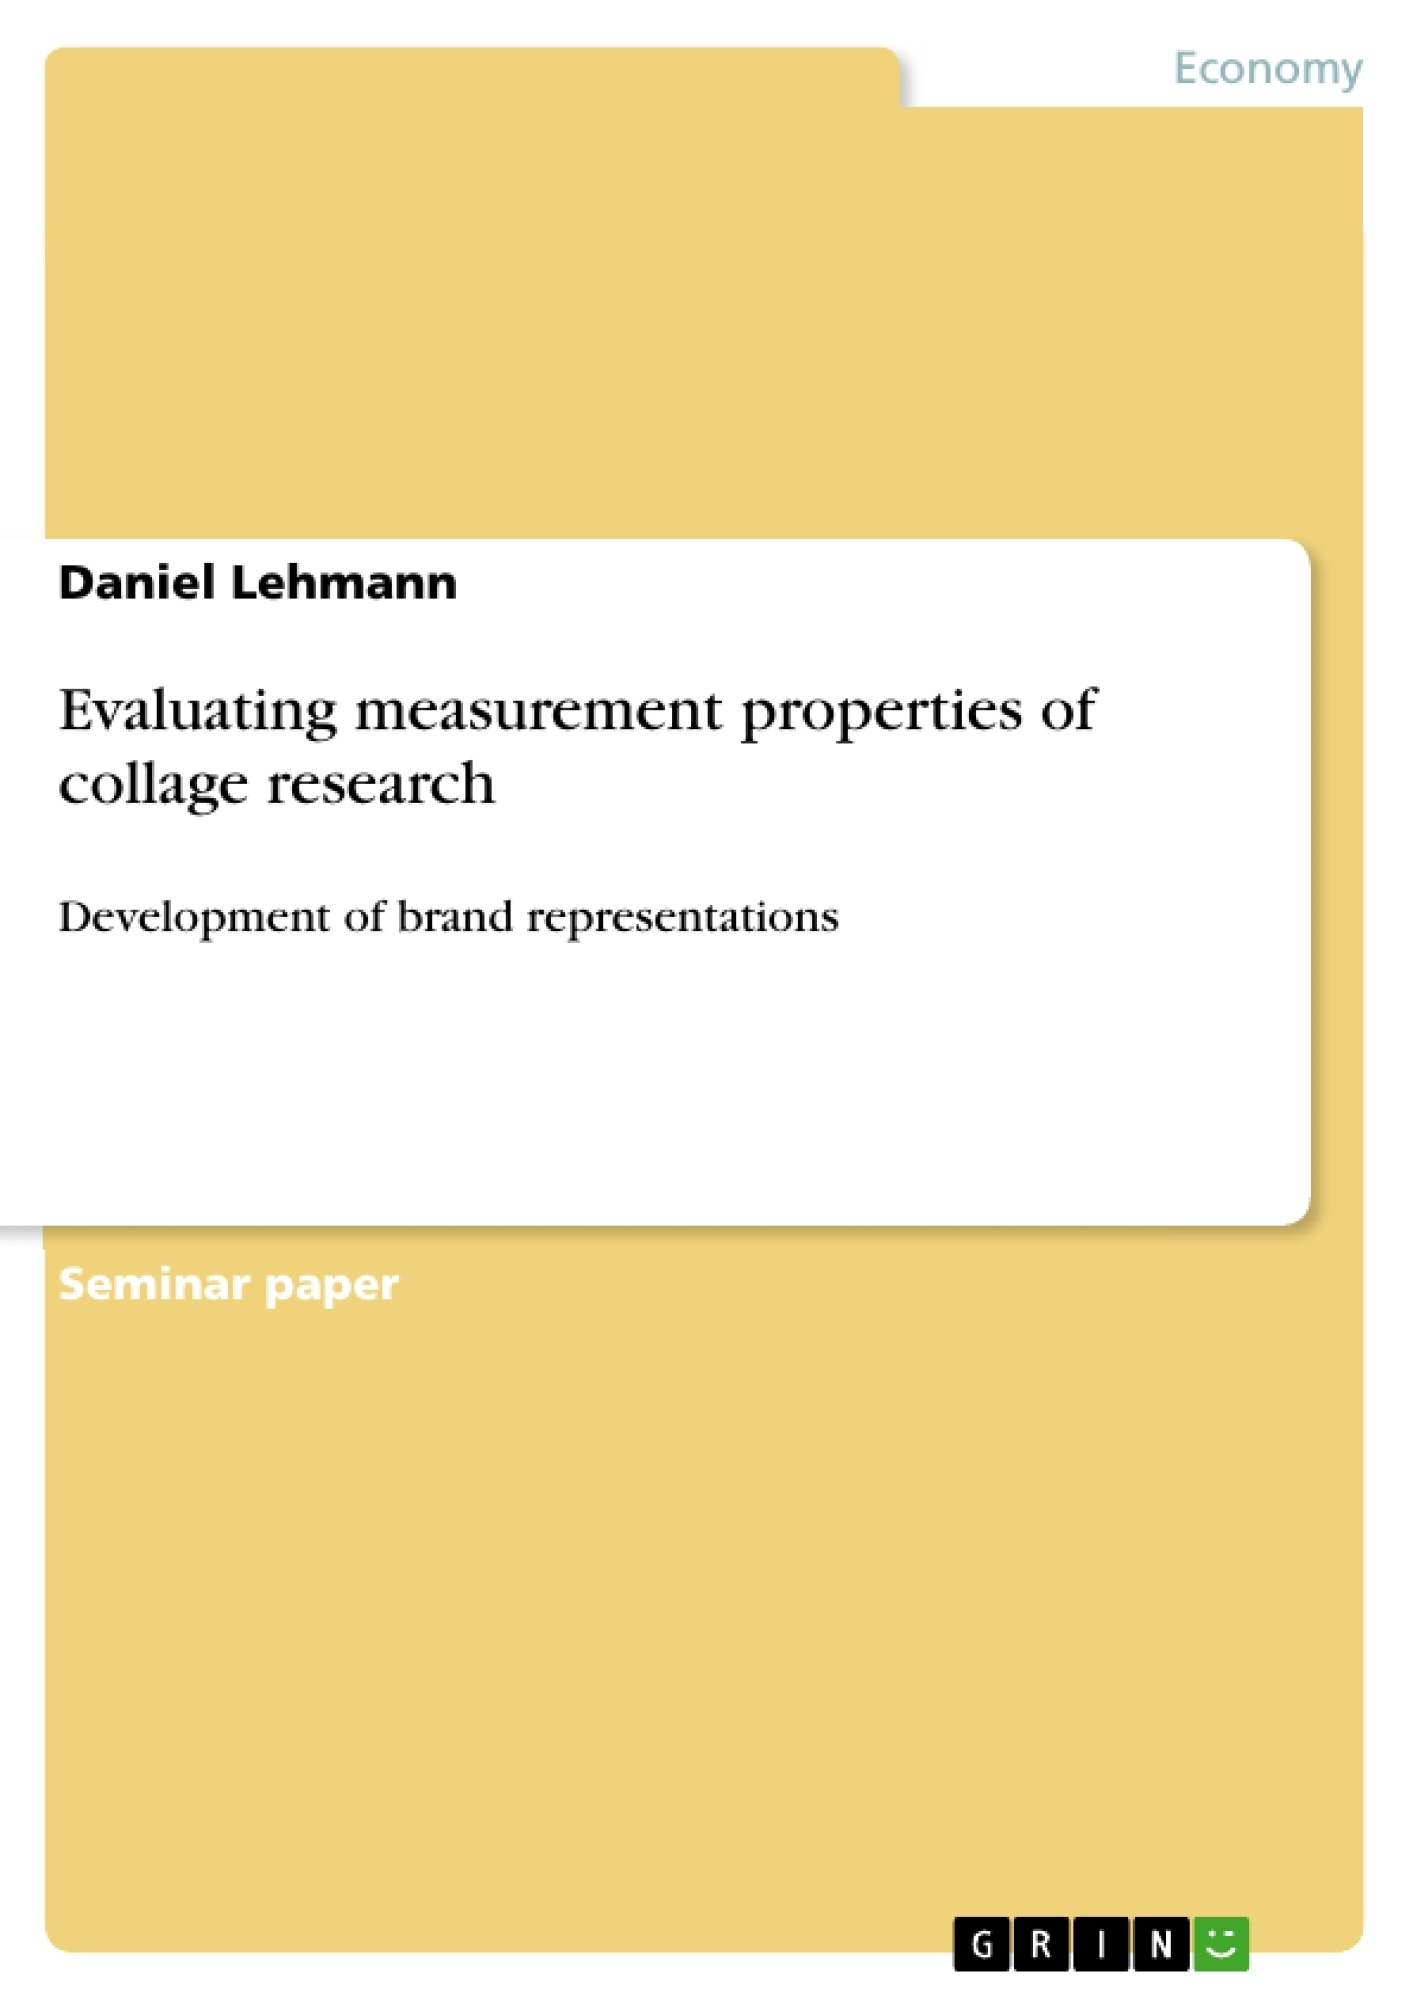 Title: Evaluating measurement properties of collage research